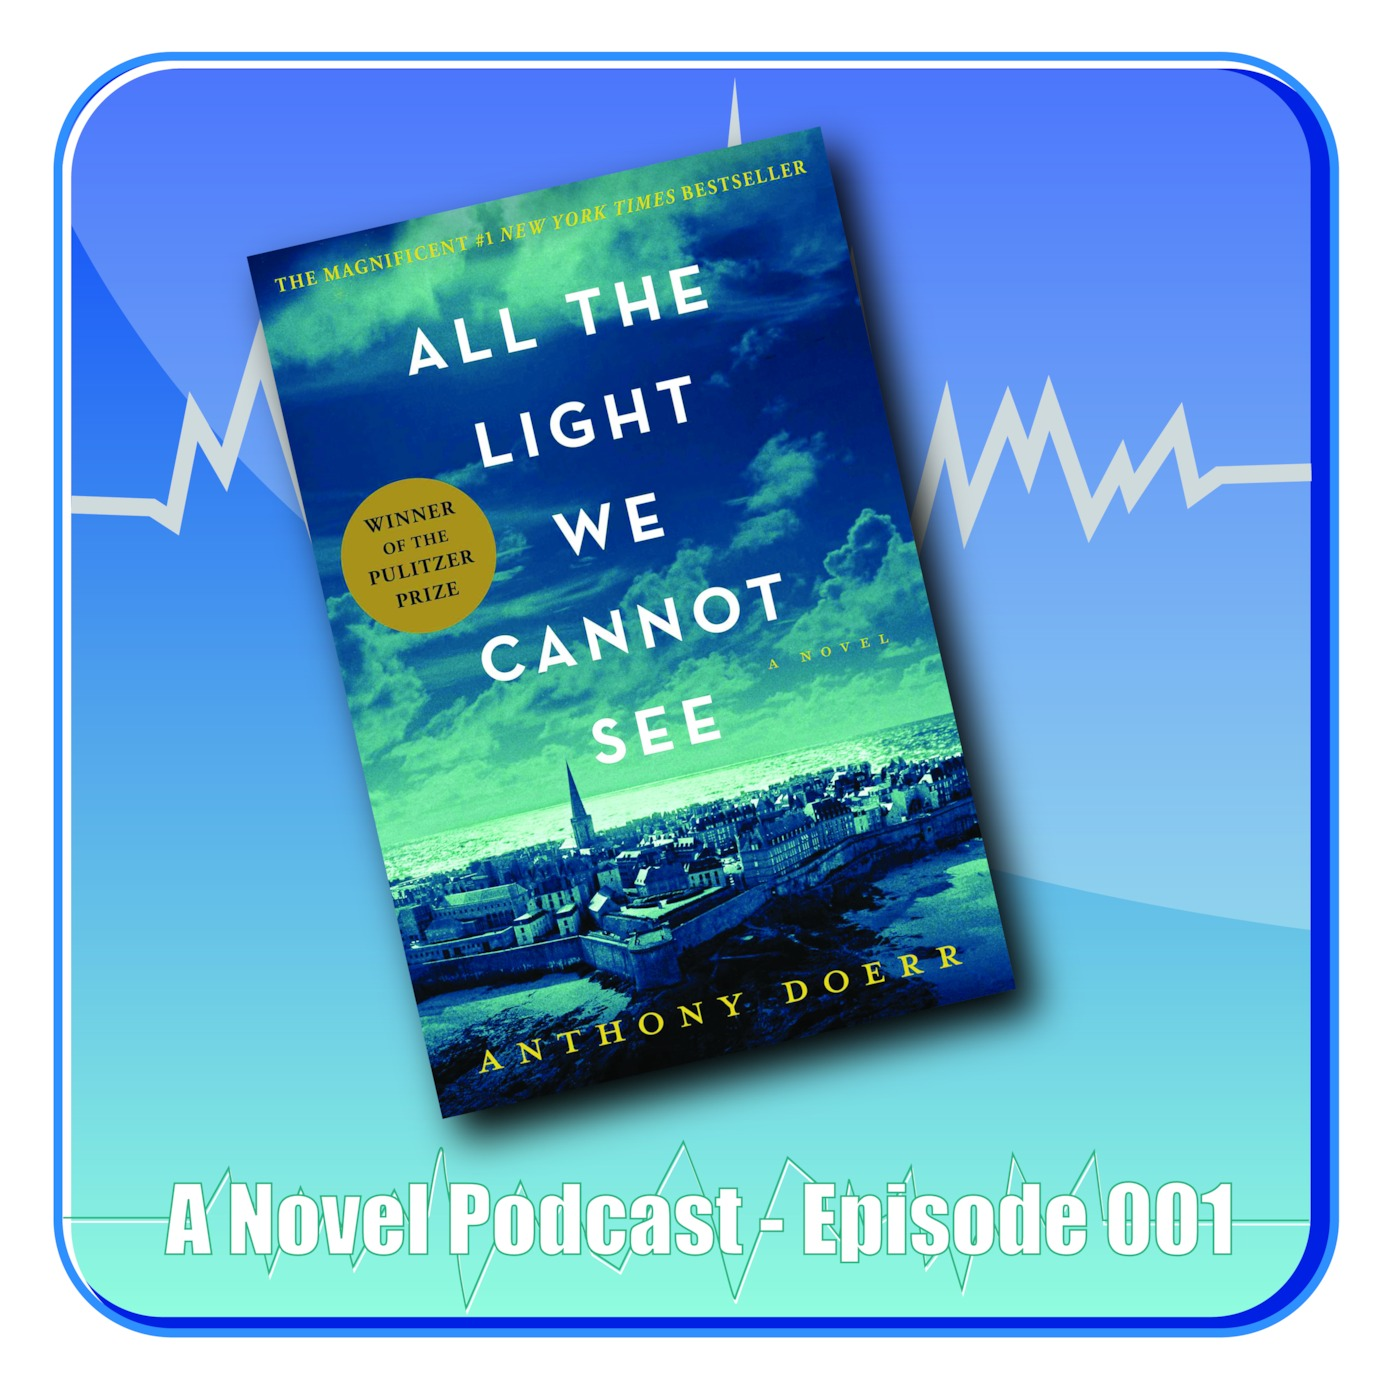 All The Light We Cannot See ANP A Novel Podcast podcast